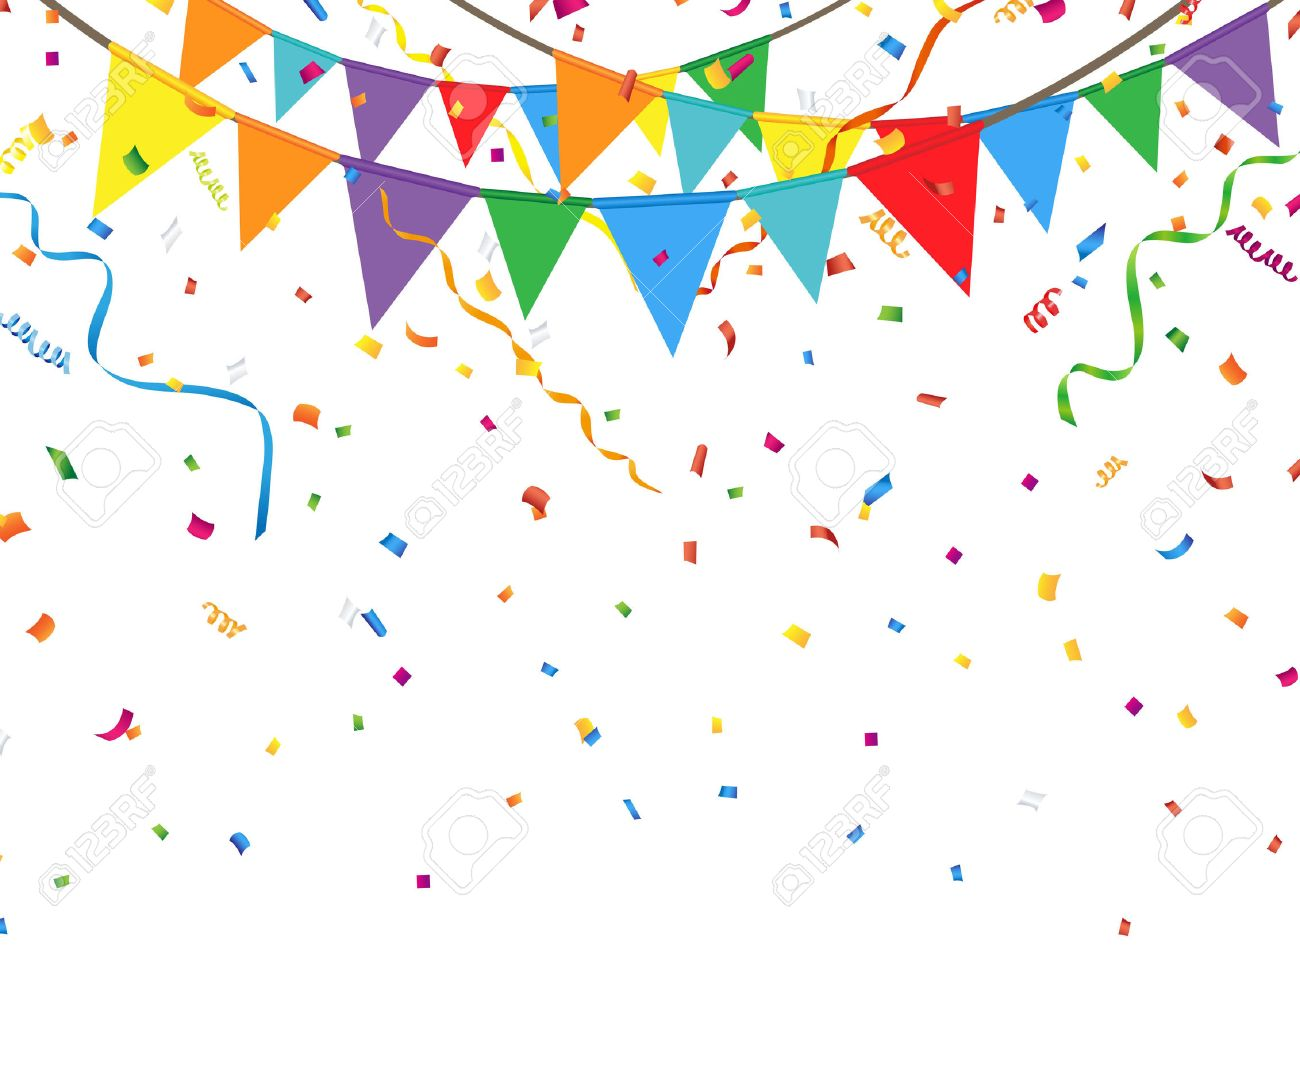 Party flags with confetti and streamer - 54788399